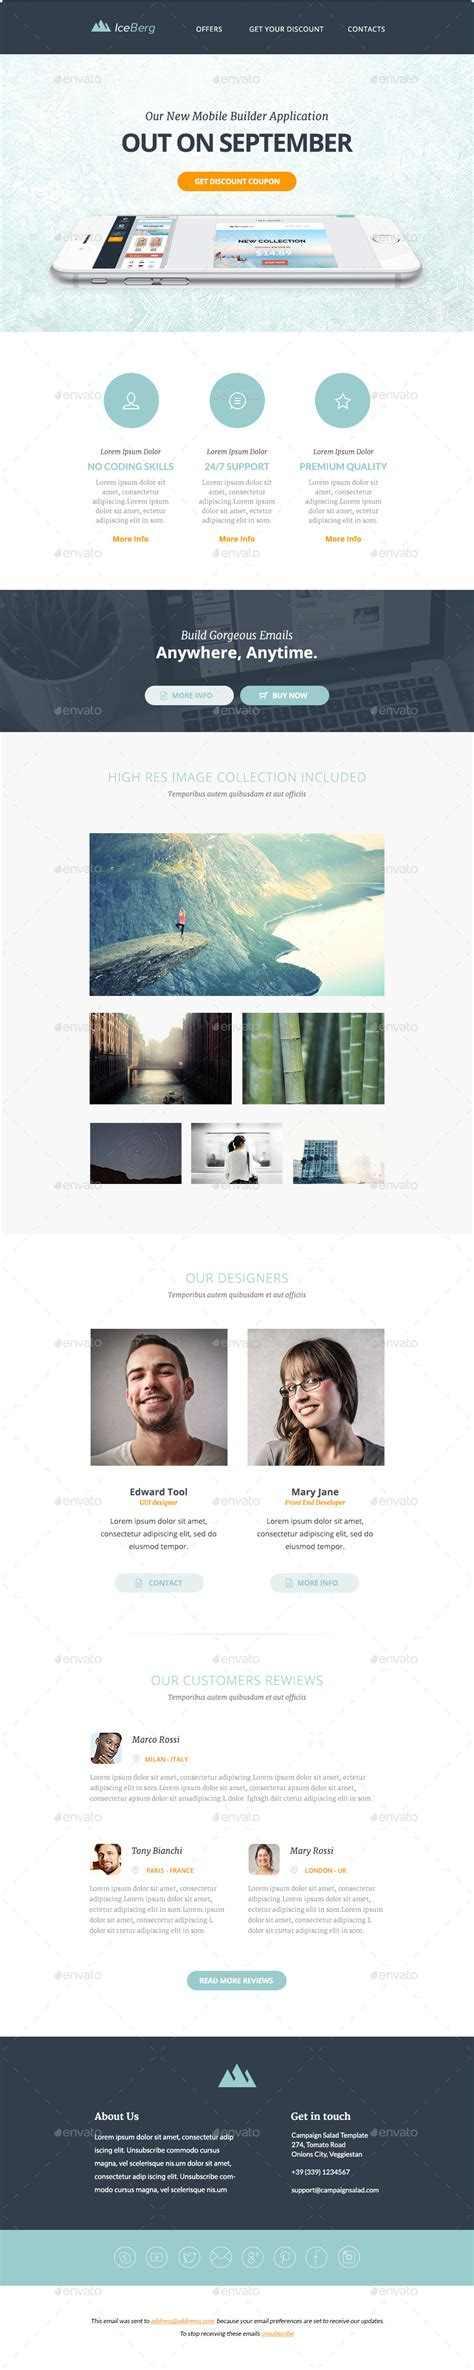 iceberg multipurpose email templates by mailsalad